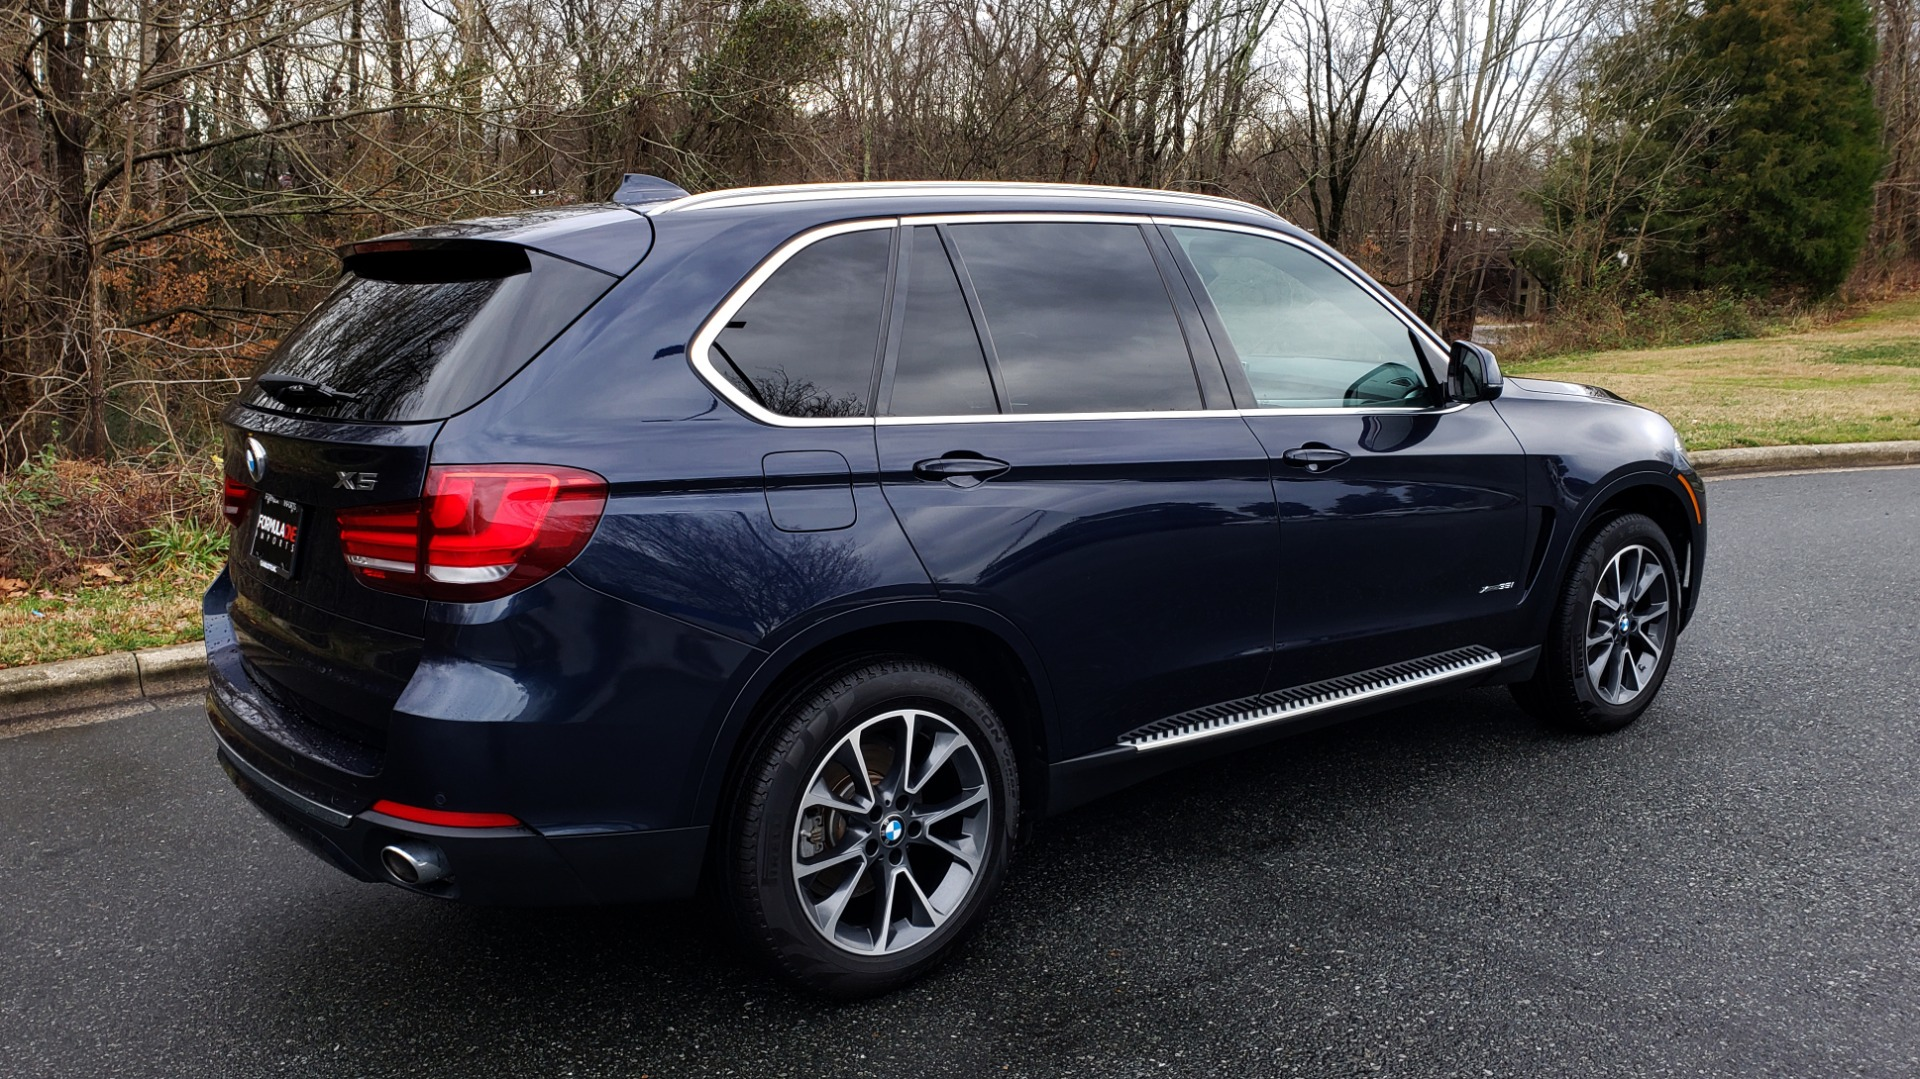 Used 2017 BMW X5 XDRIVE35I / PREMIUM / LUX / DRVR ASST PLUS / 3-ROW for sale Sold at Formula Imports in Charlotte NC 28227 6